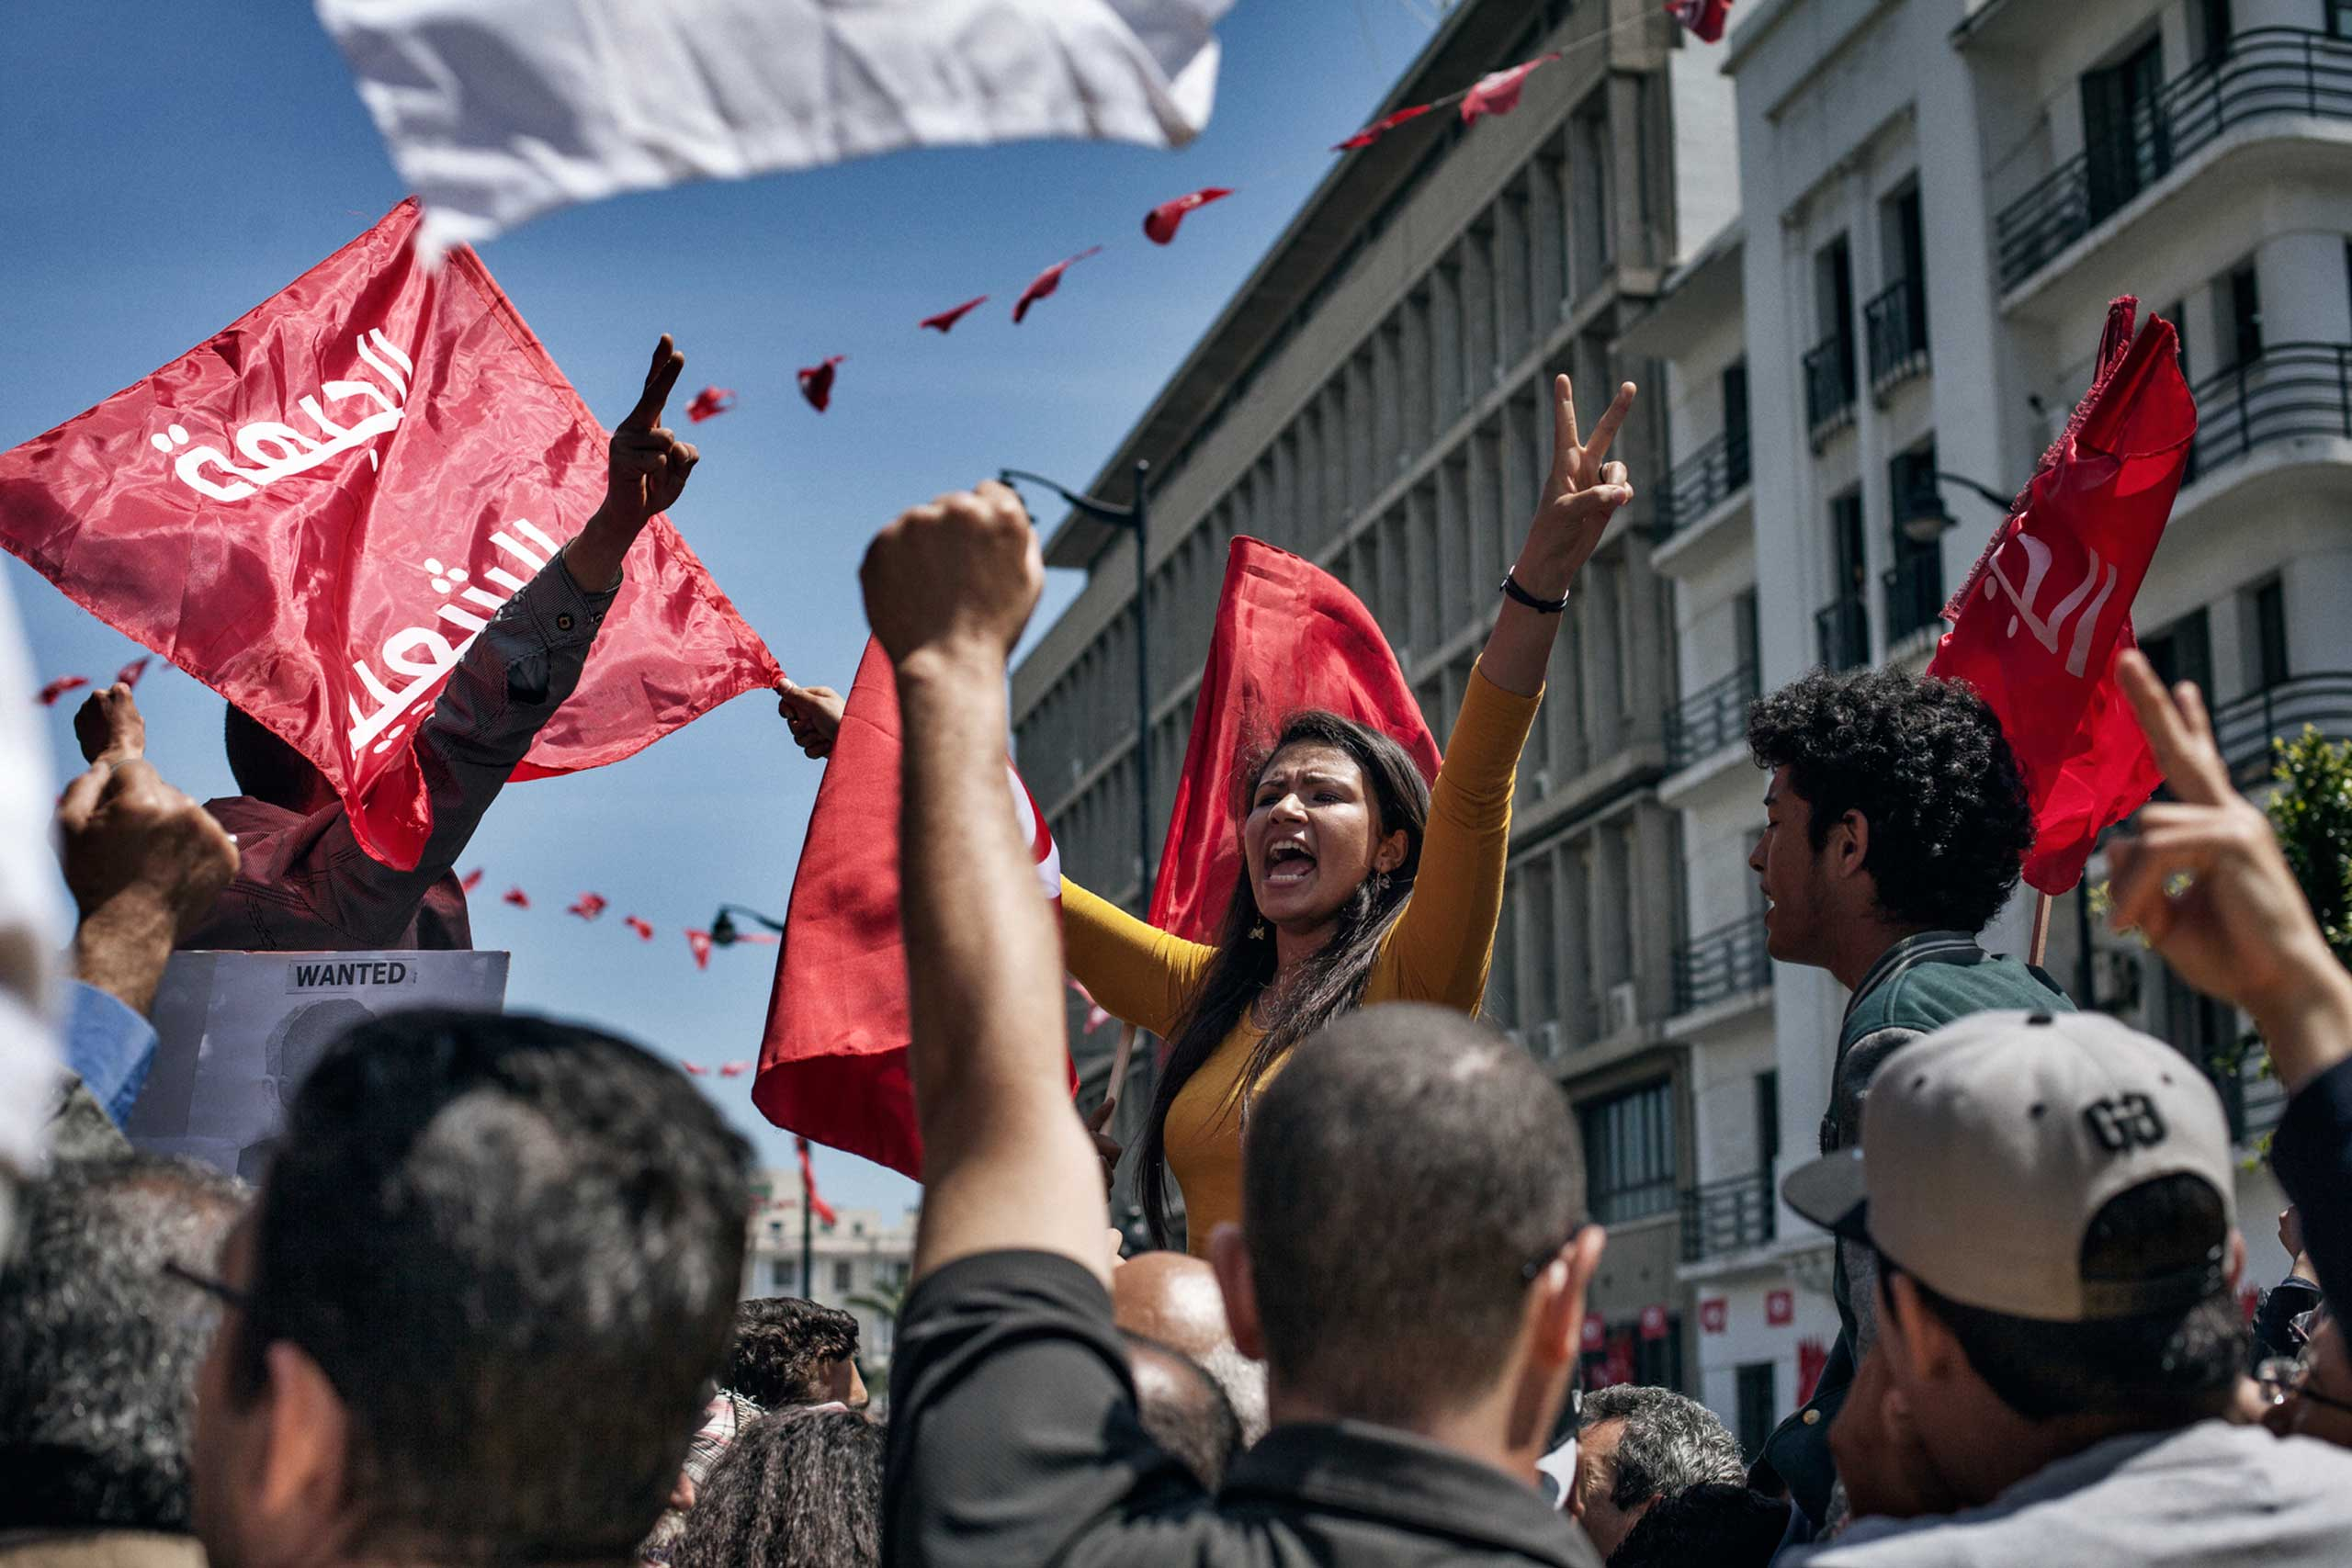 Khouloud, an engineering student, shouts slogans May 2013, during the weekly demonstration in front of the Ministry of Interior asking for progress in the investigation of the assassination of Chokri Belaid. opposition leader Chokri Belaid, was killed by a gunman in Feb. 2013.